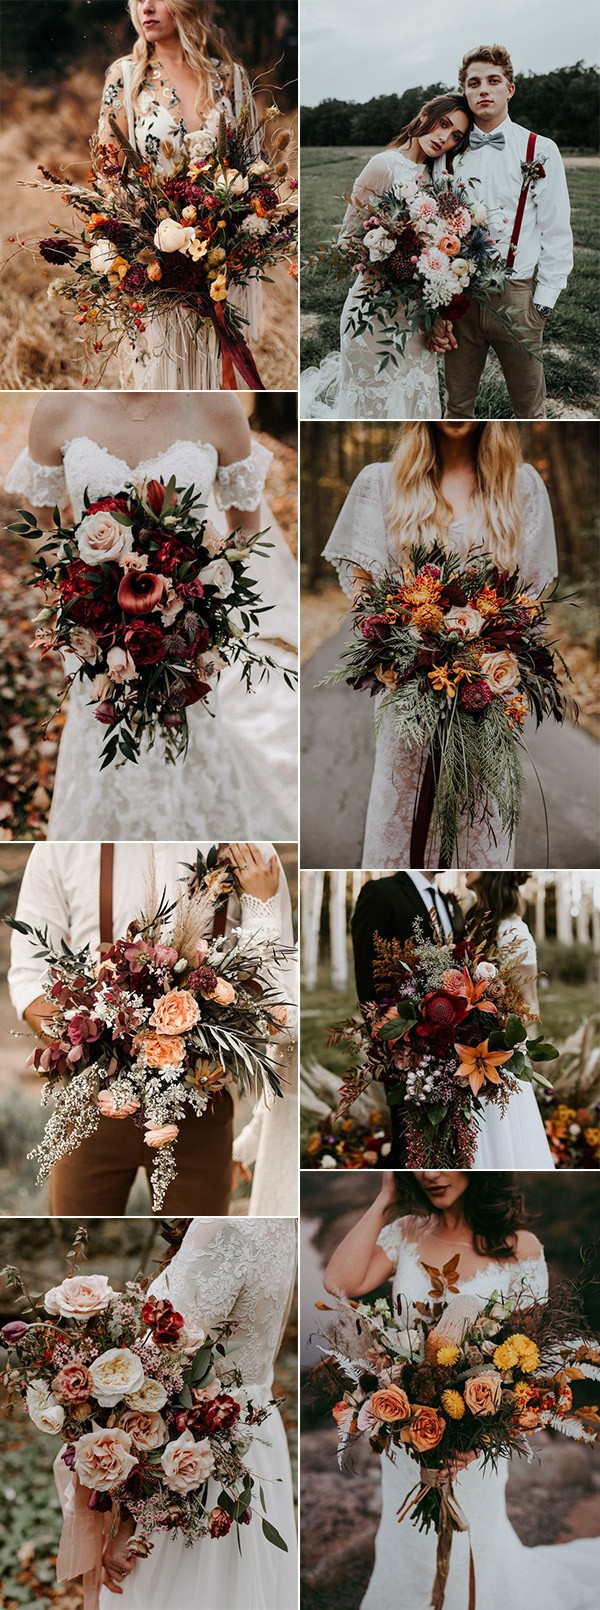 Trending Fall Wedding Flowers And Bouquets For 2019 Emmalovesweddings